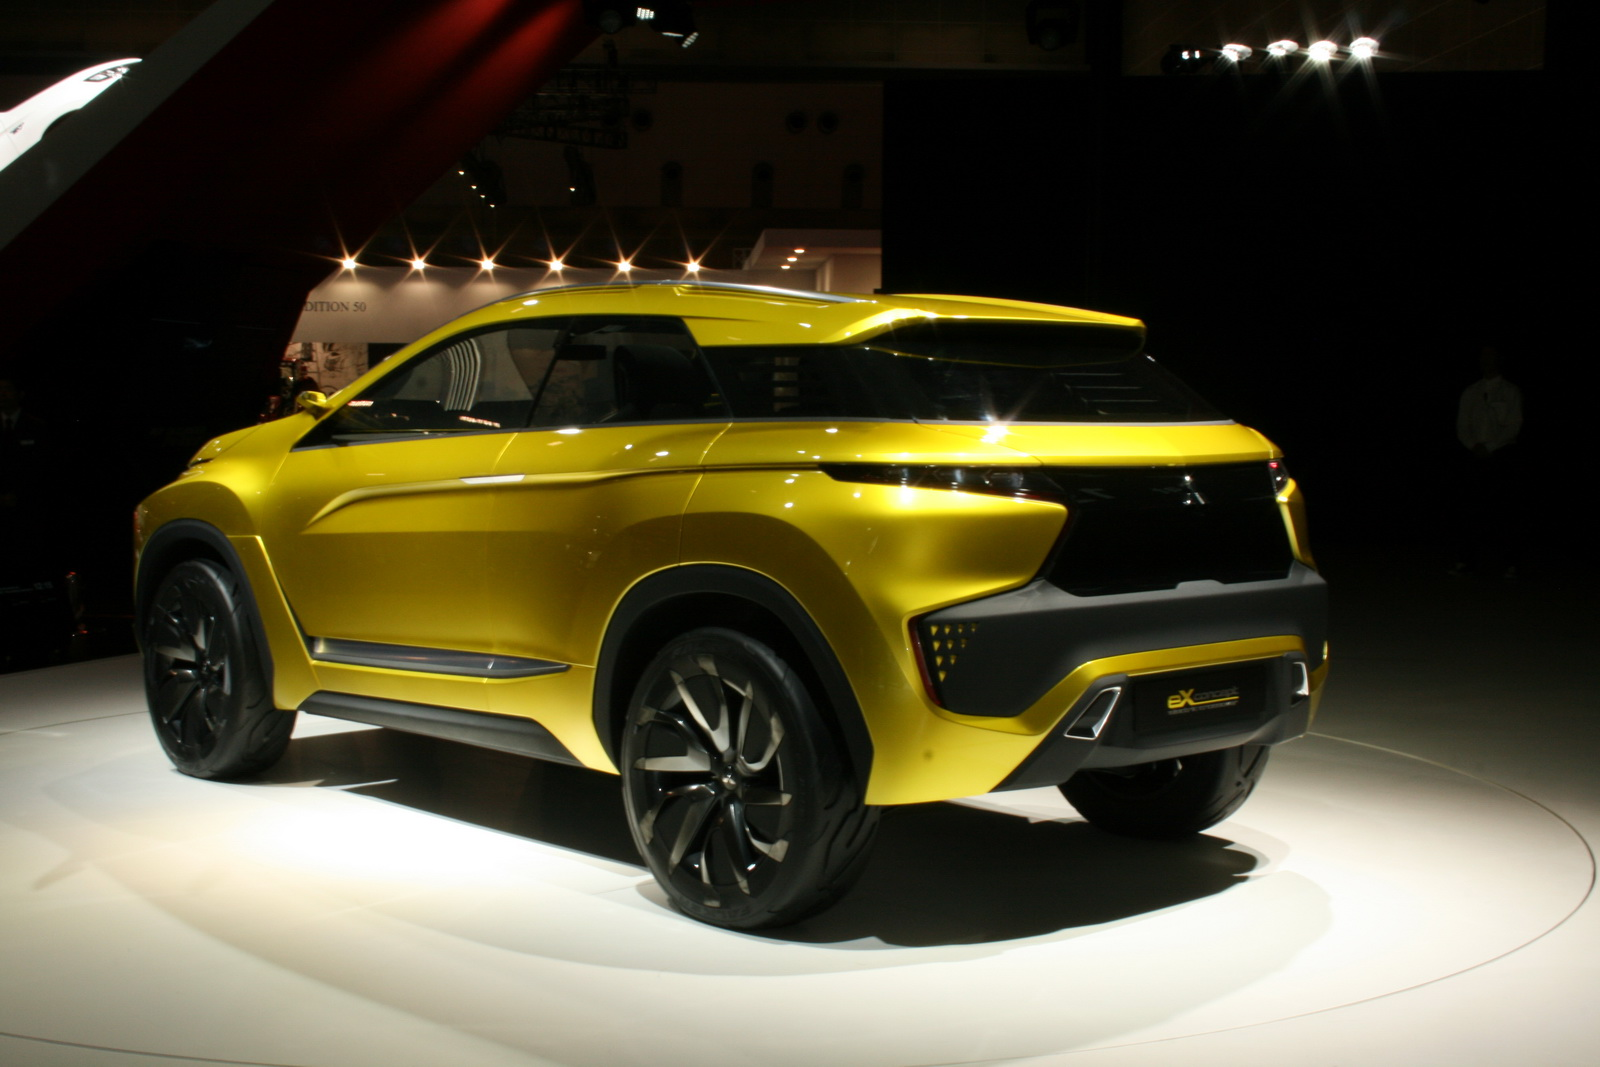 mitsubishi previews their first fully electric suv with the ex concept carscoops. Black Bedroom Furniture Sets. Home Design Ideas